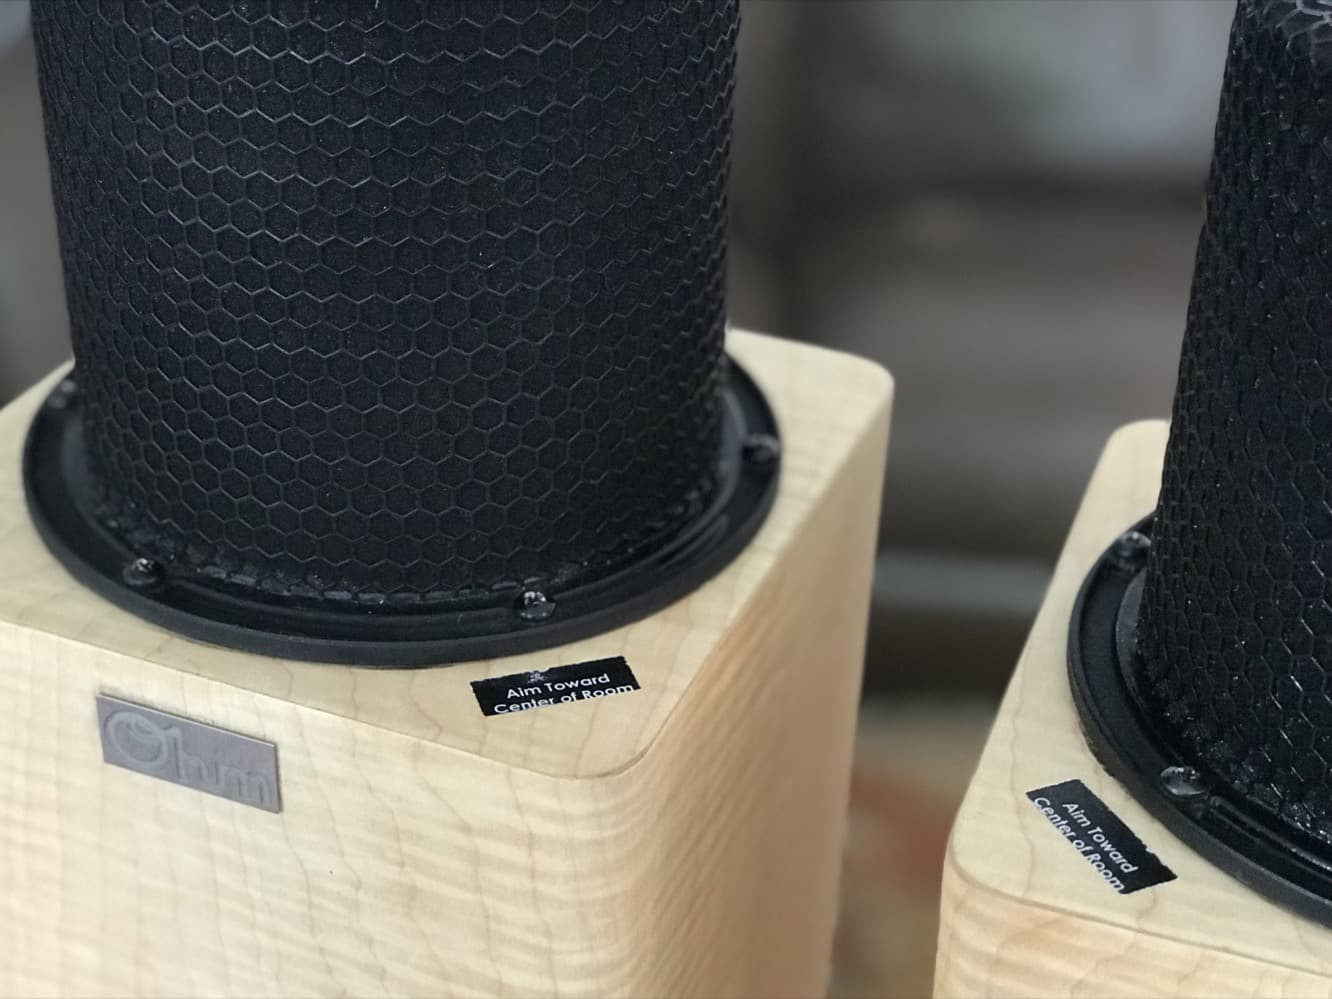 Review: Ohm Walsh 1000 Speakers